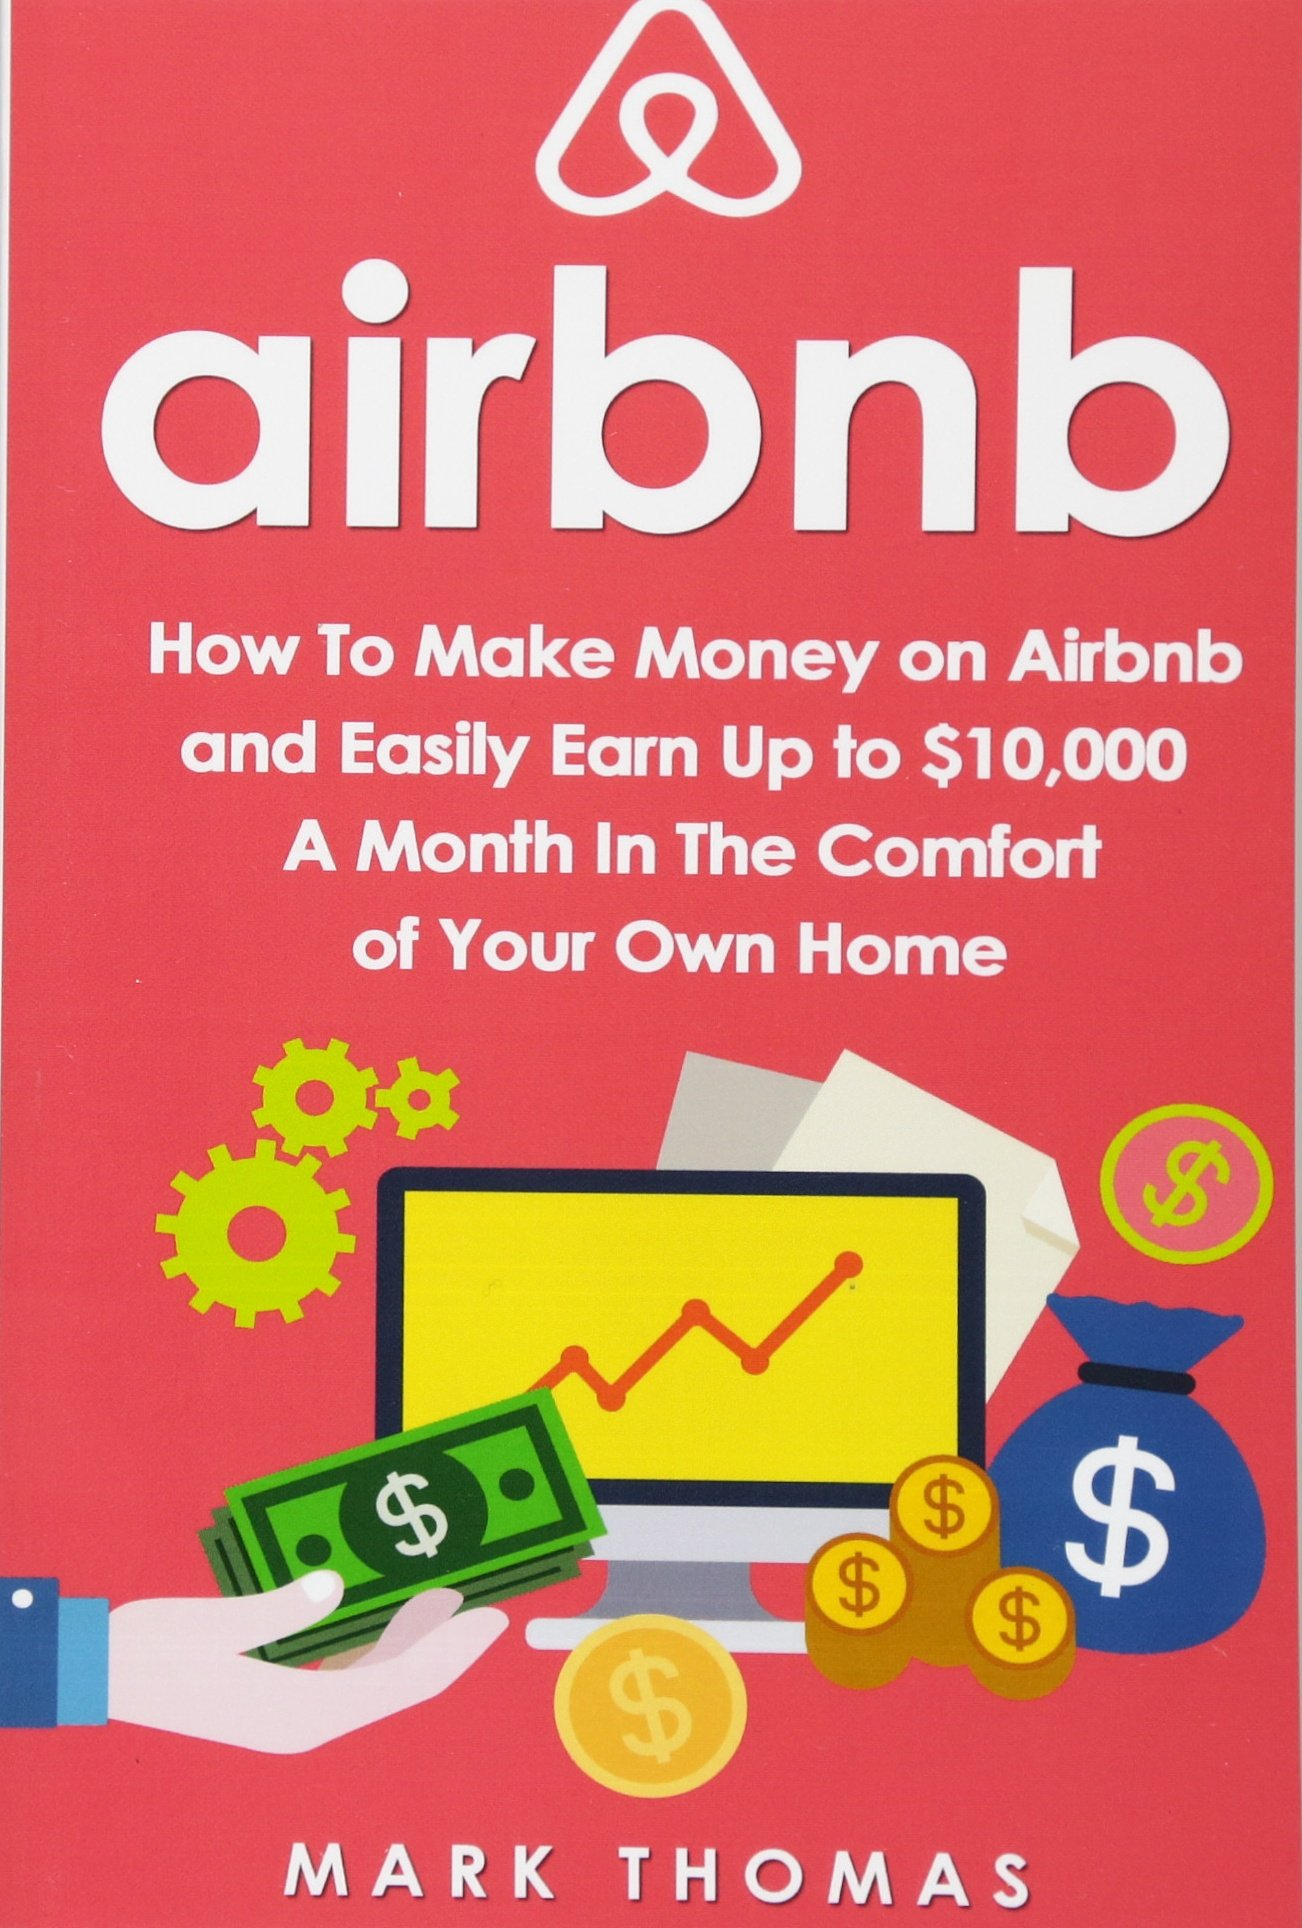 The airbnb profit blueprint learn how i made 5000 a month with airbnb how to make money on airbnb and easily earn up to 10000 a month malvernweather Image collections